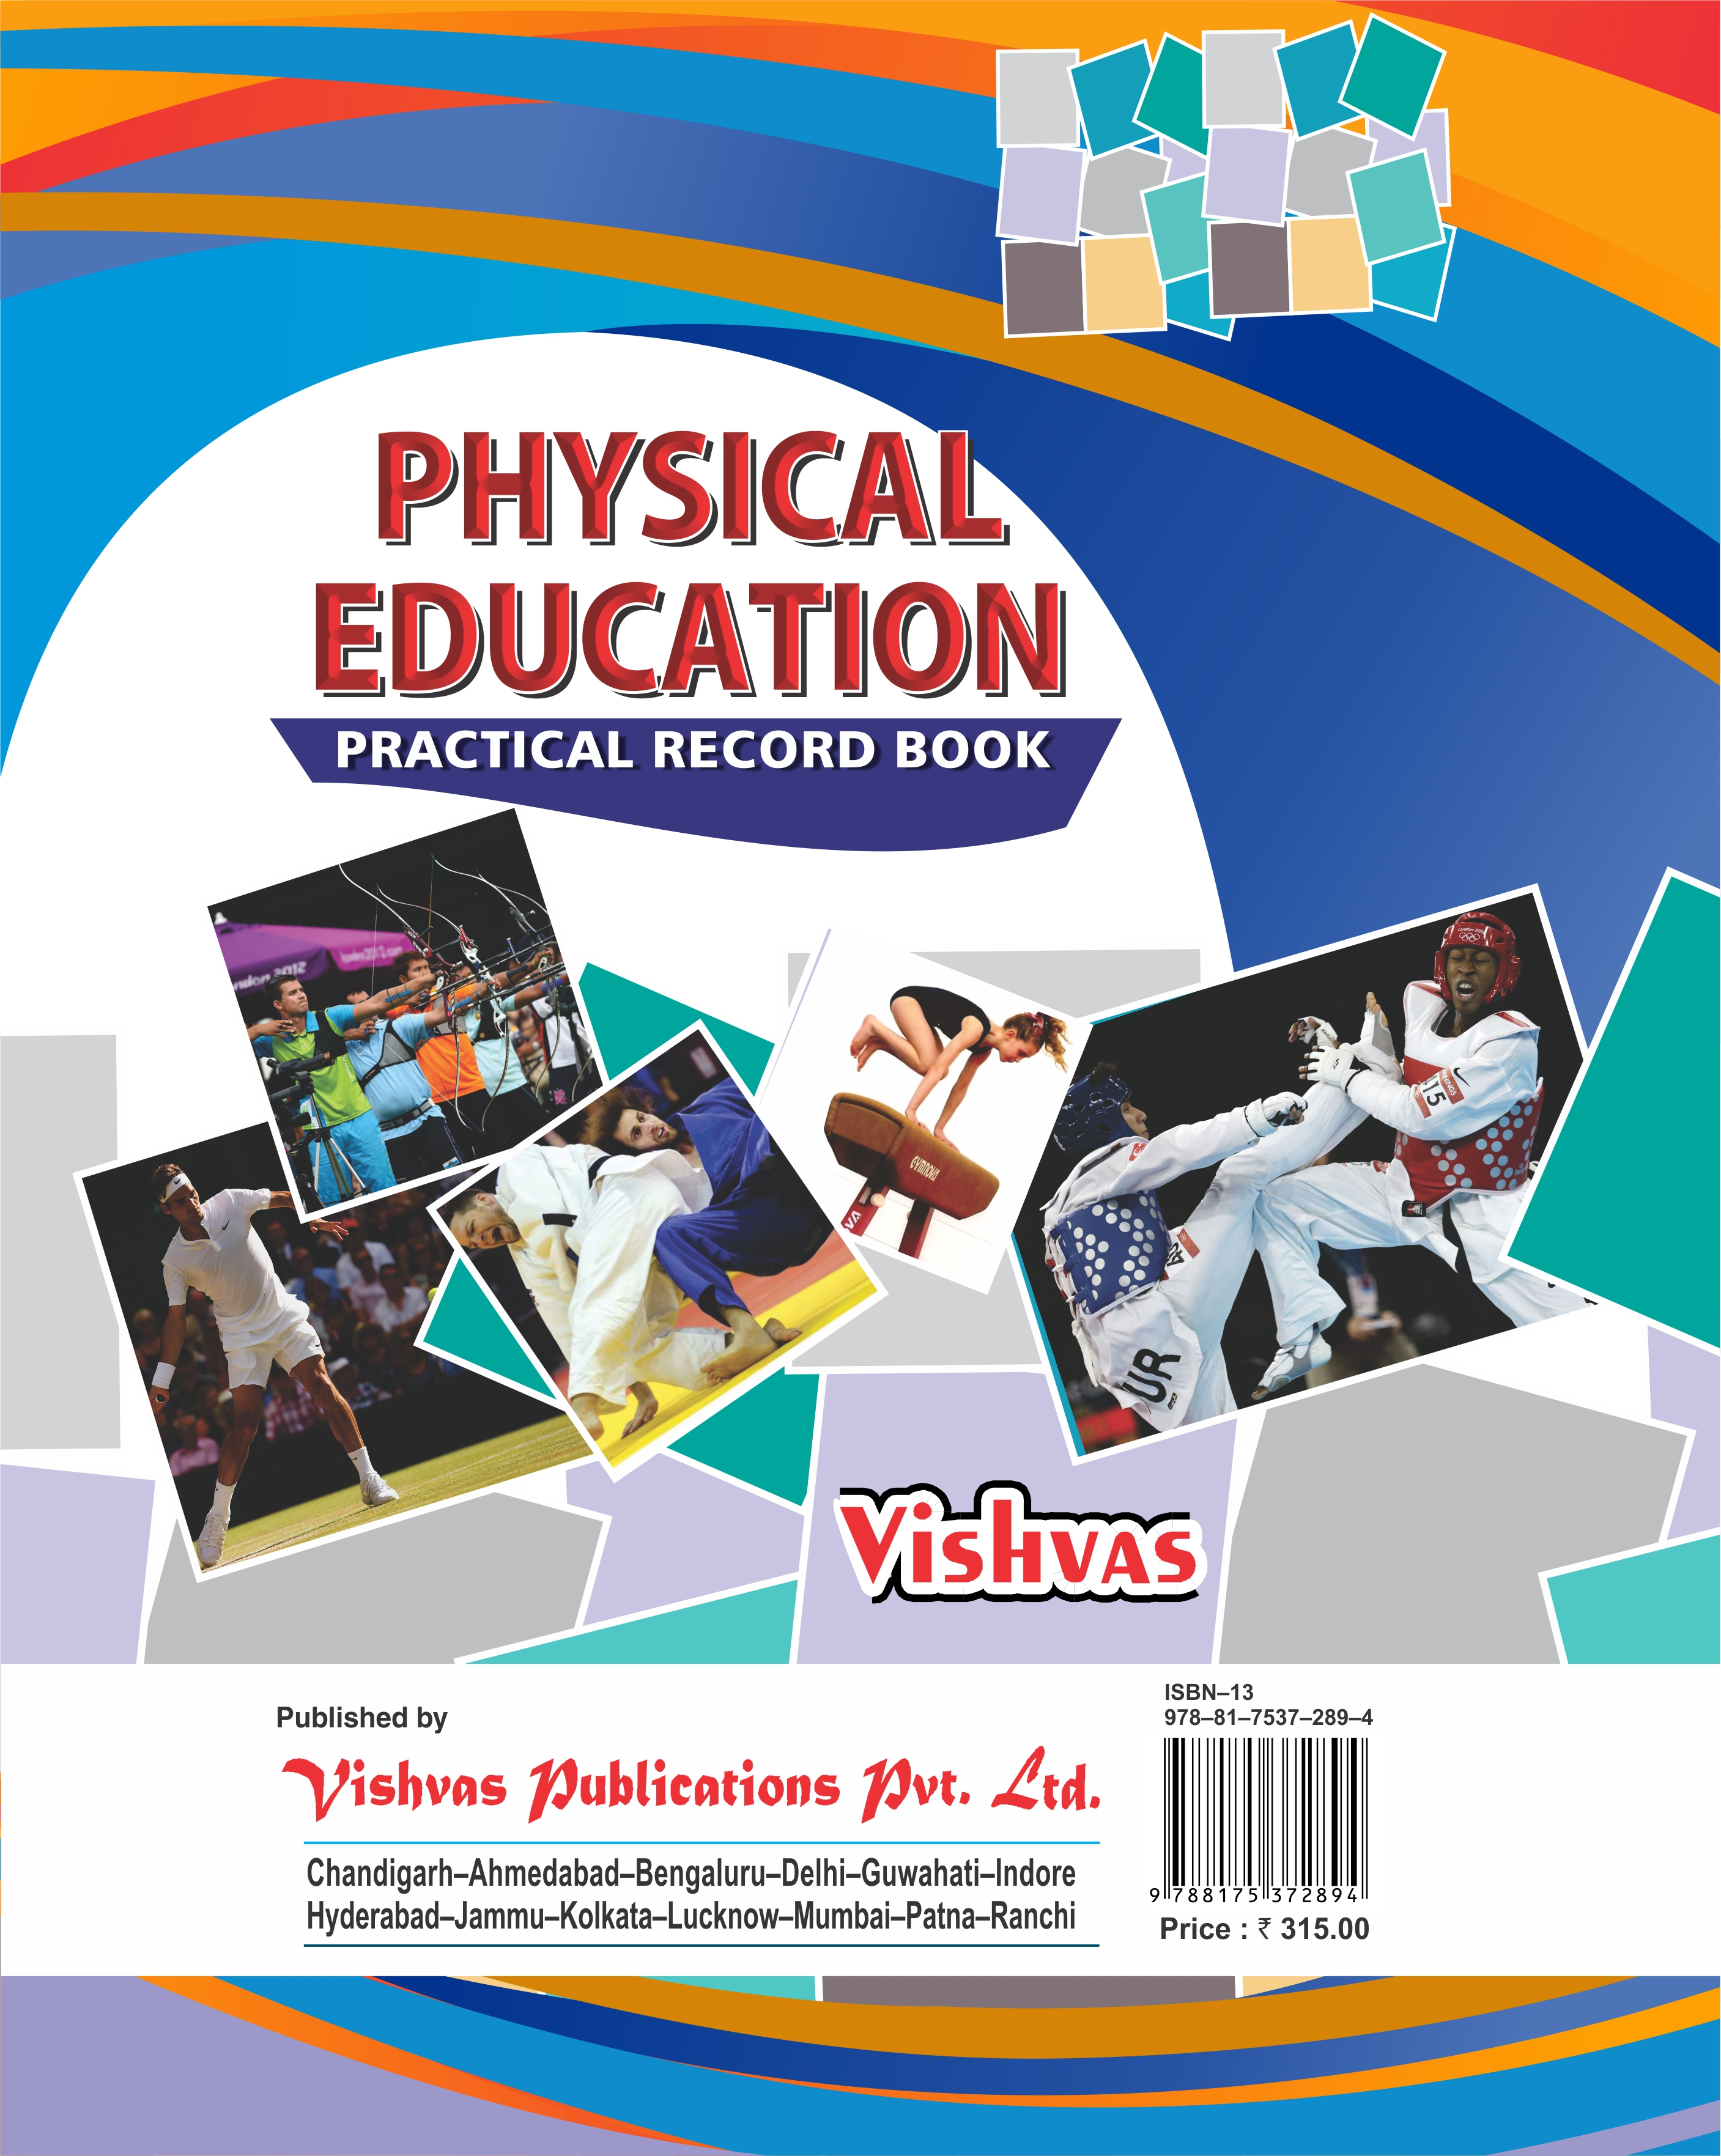 Cbse 2018 physical education class xi prac record book english physical education class 11 prac record book english as per latest syllabus malvernweather Image collections